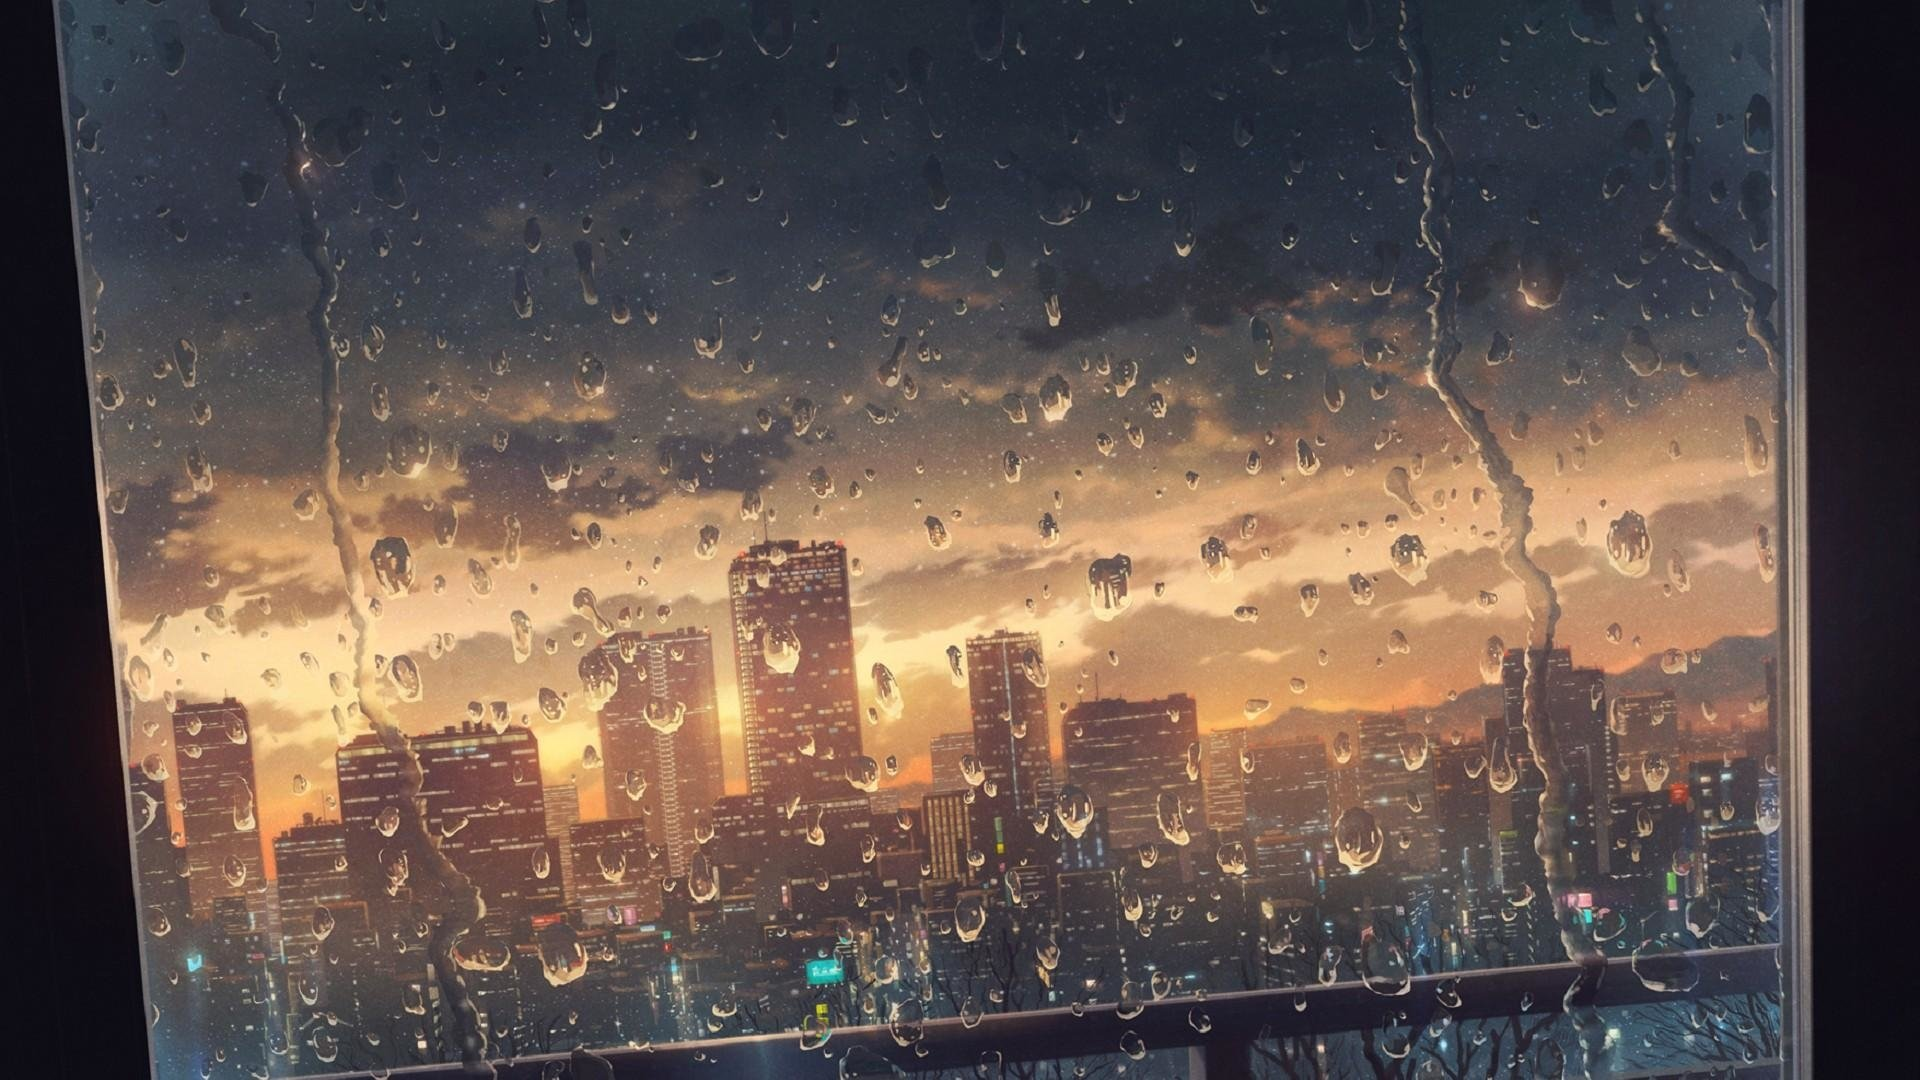 Rainy Hd Wallpaper Background Image 1920x1080 Id 998448 Wallpaper Abyss